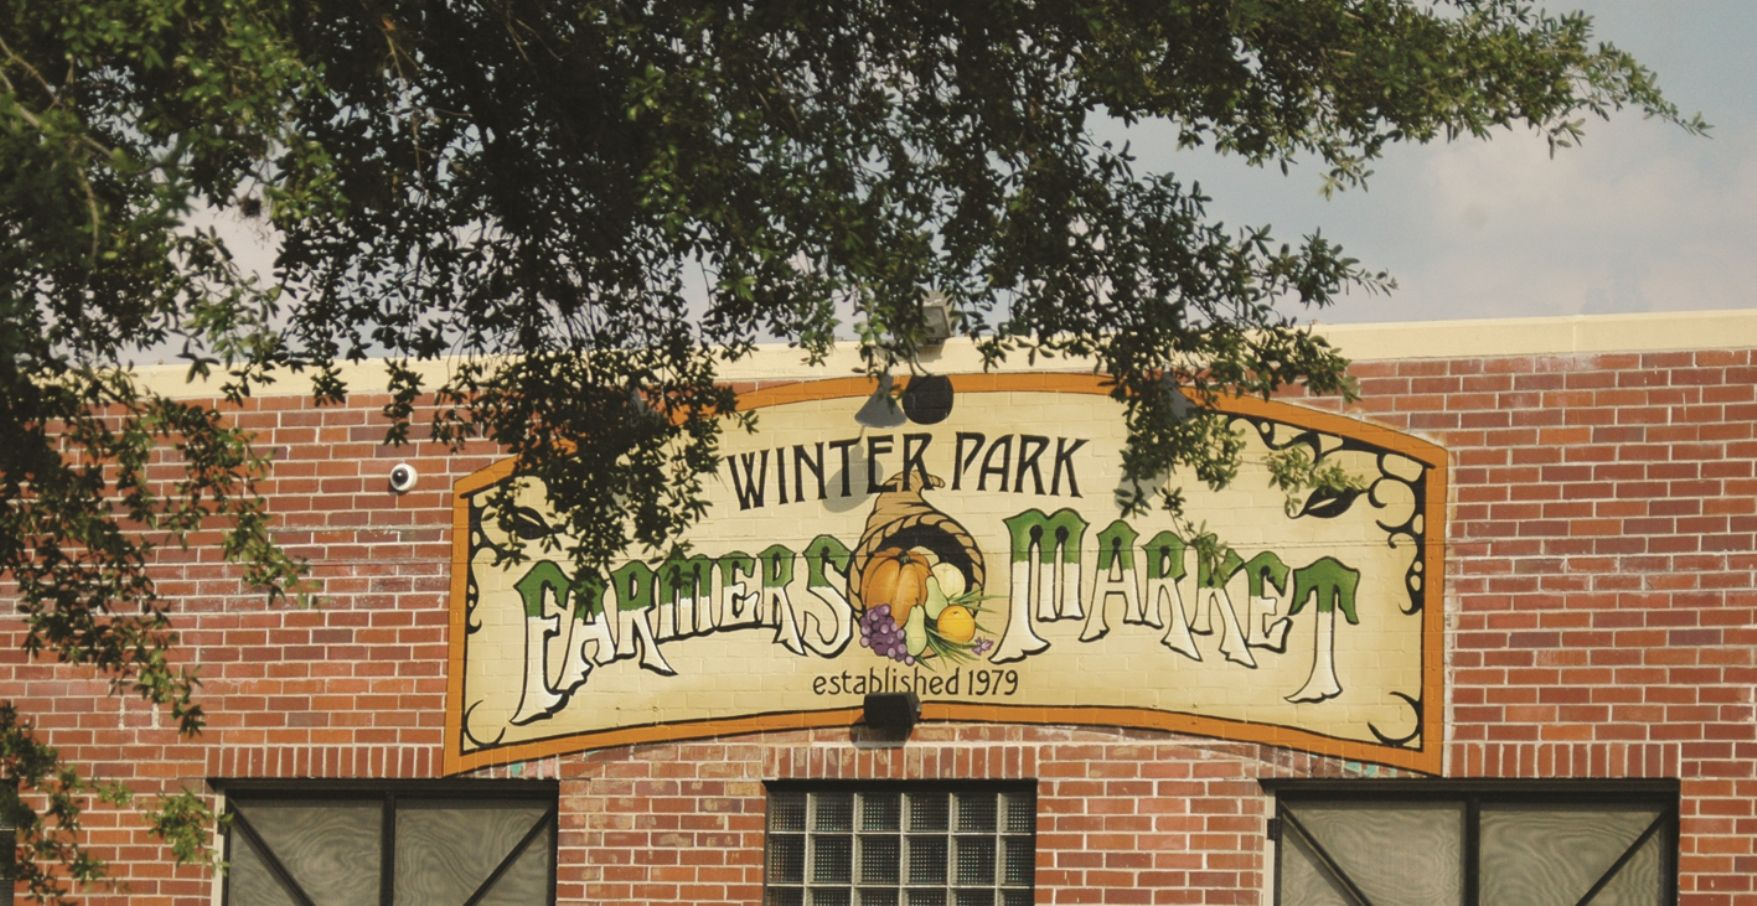 Winter Park, FL Hotels | Winter Park Farmer's Market